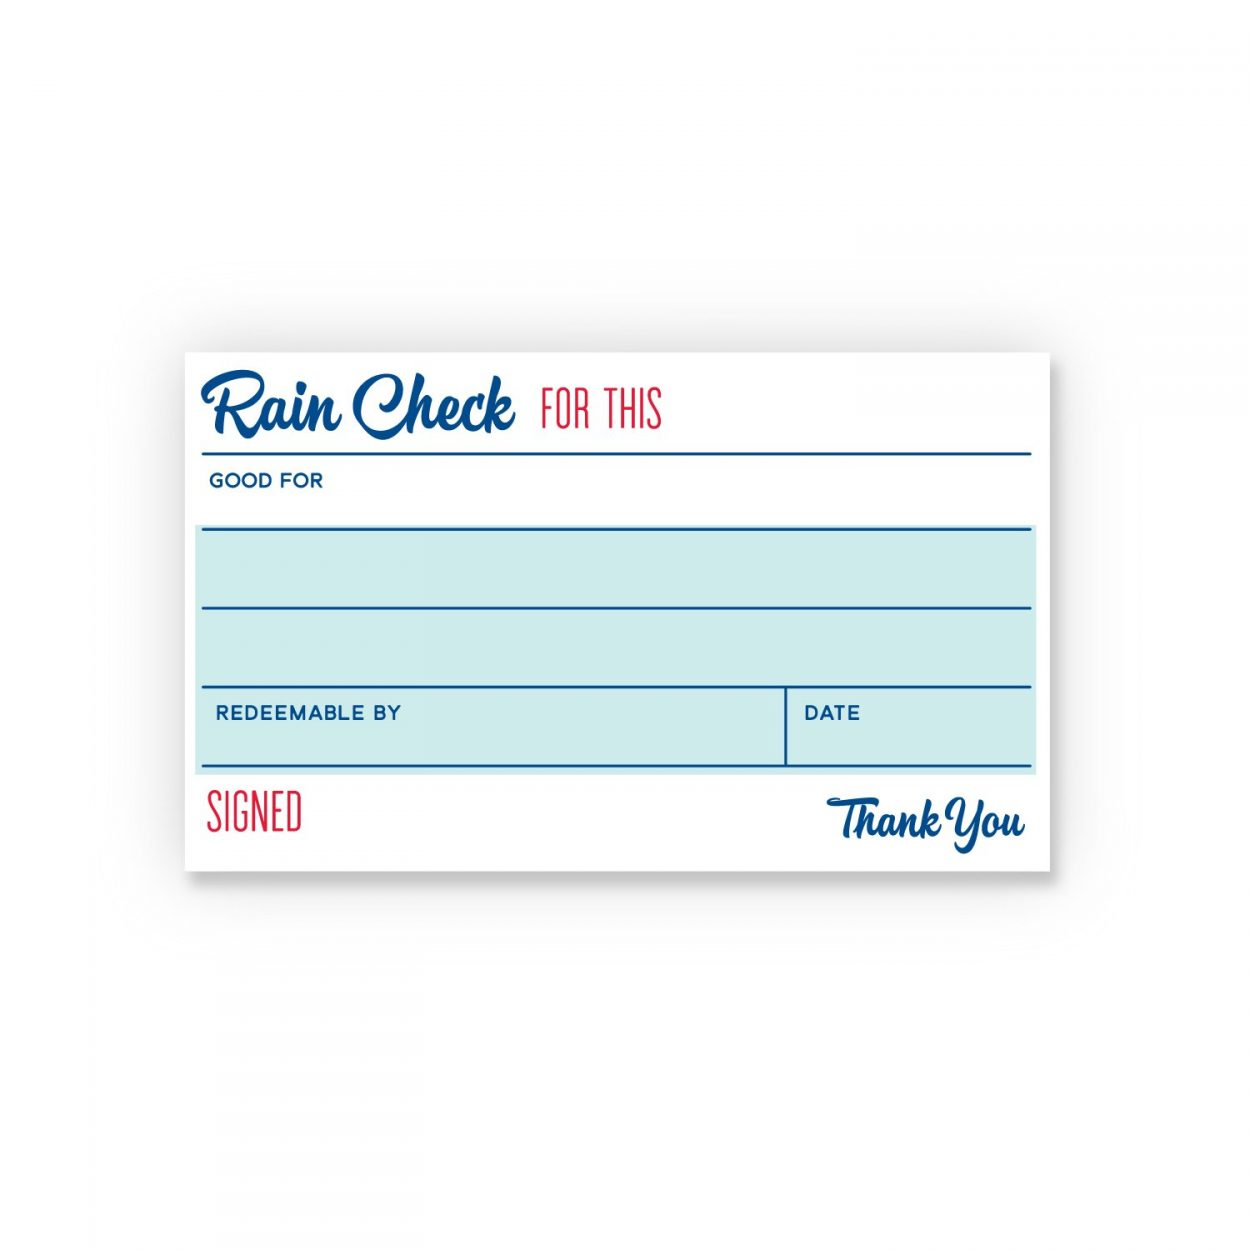 Raincheck - Social Currency Cards